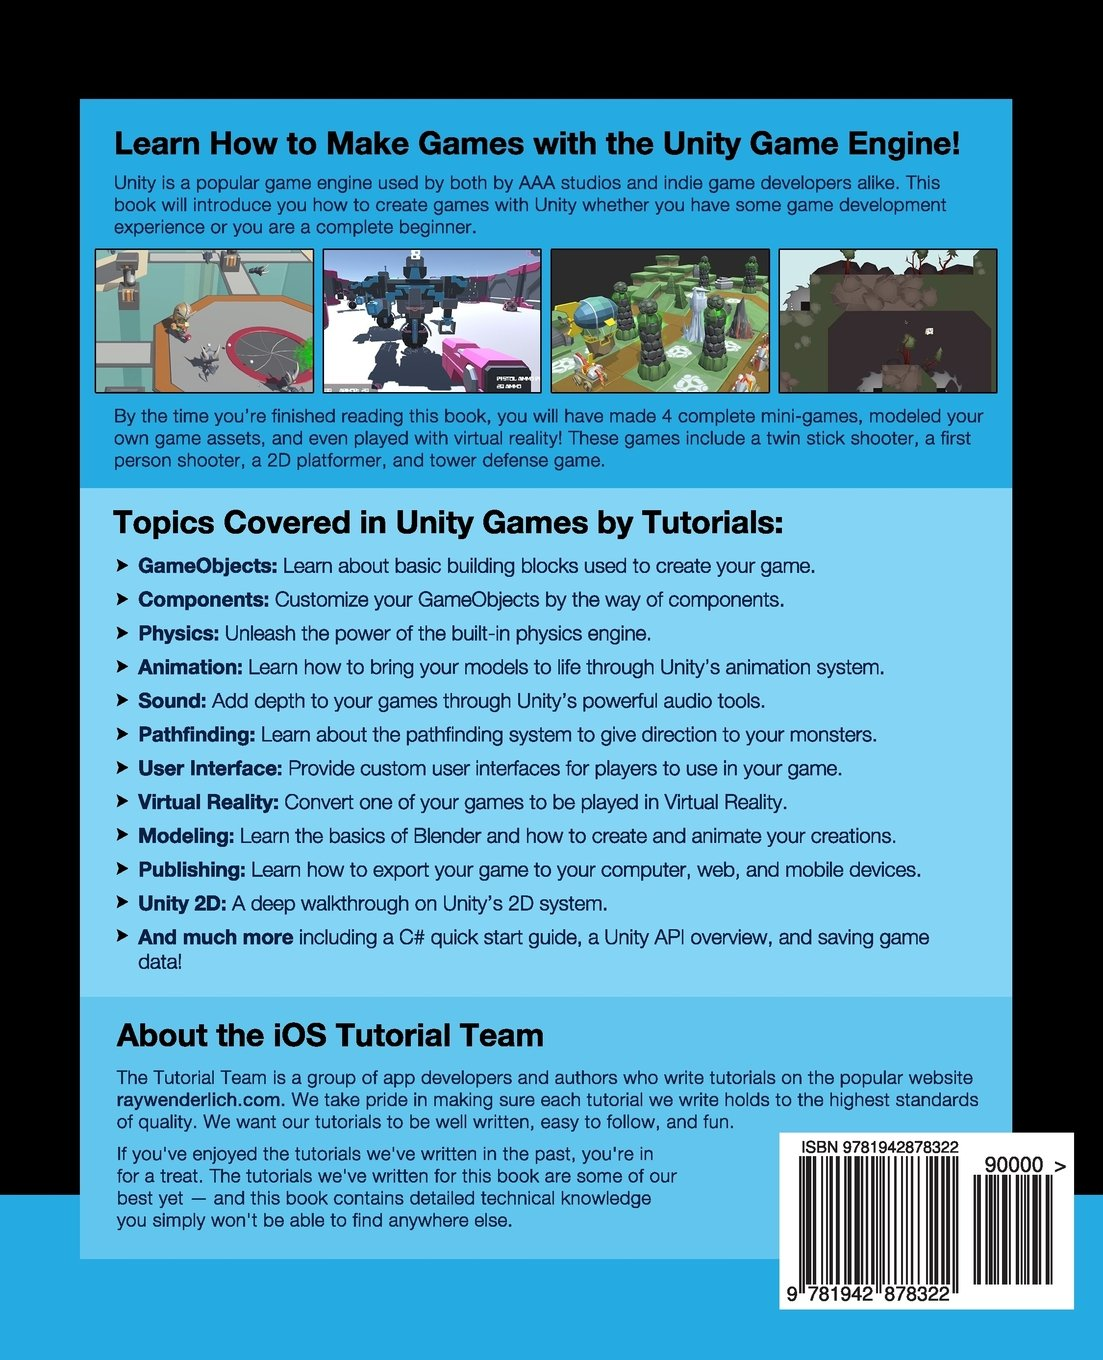 Unity Games by Tutorials: Make 4 Complete Unity Games from Scratch